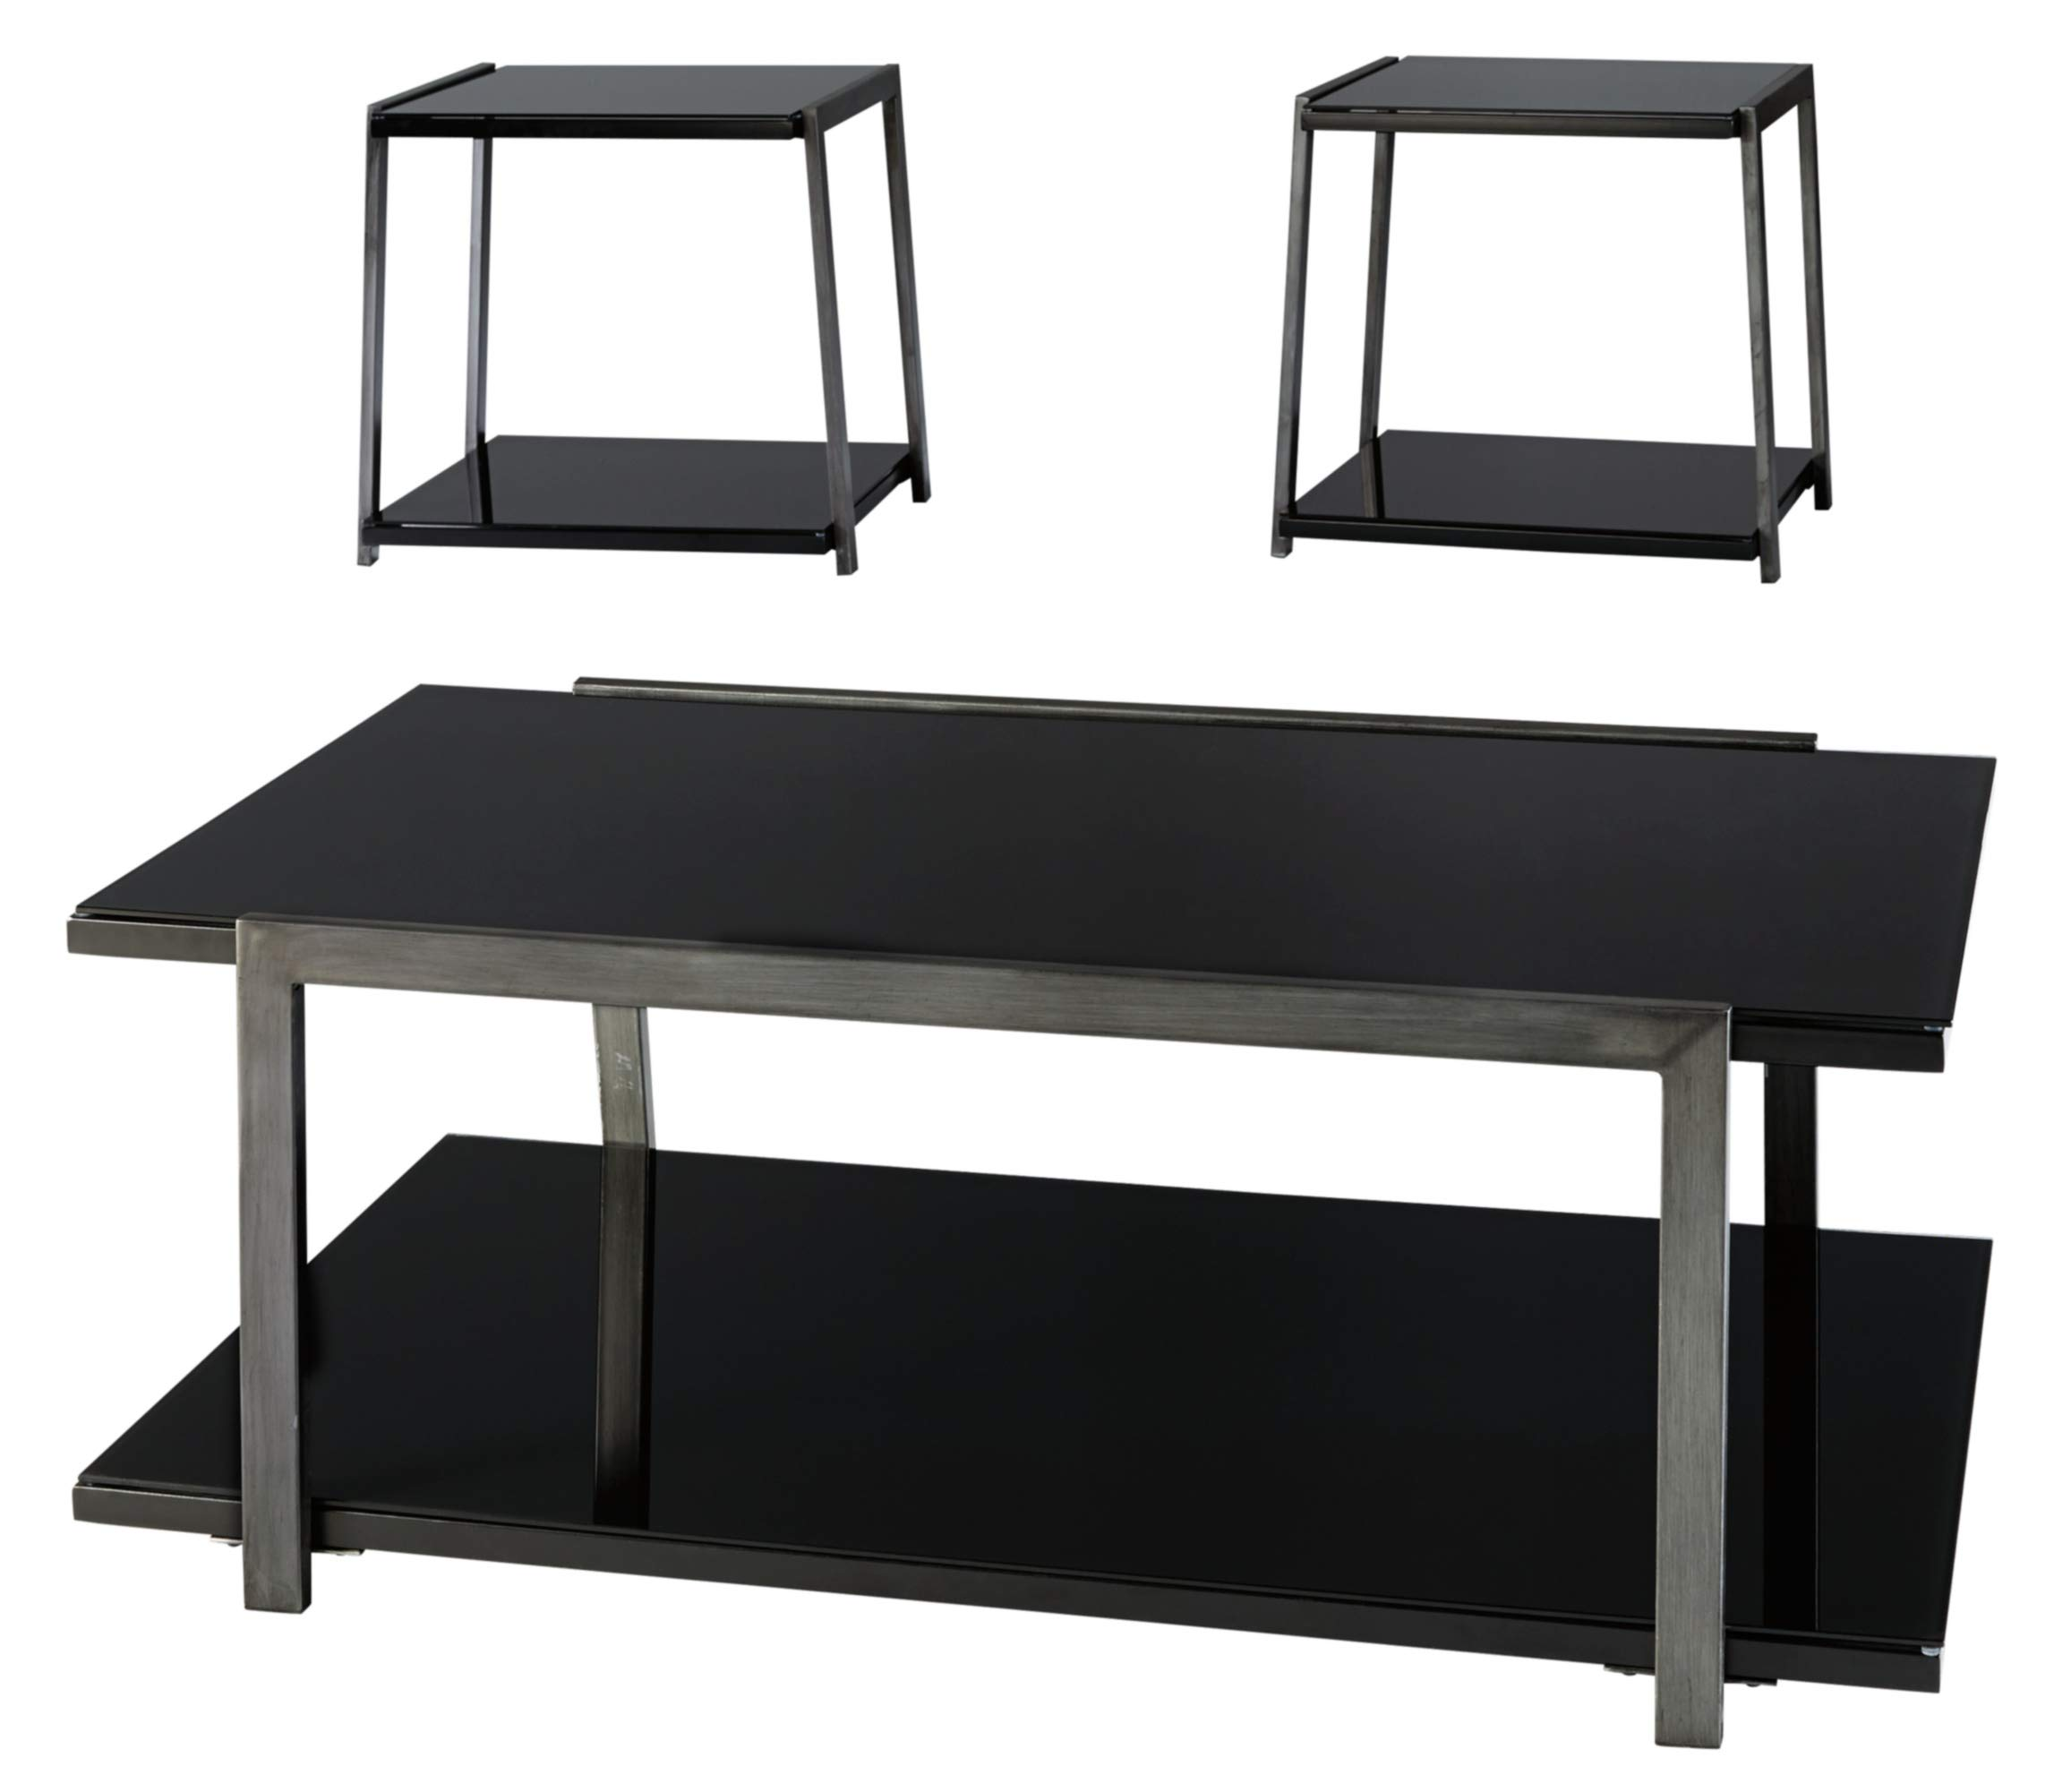 Ashley Furniture Signature Design - Rollynx Contemporary 3-Piece Occasional Table Set - Includes Cocktail Table & Two End Tables - Black by Signature Design by Ashley